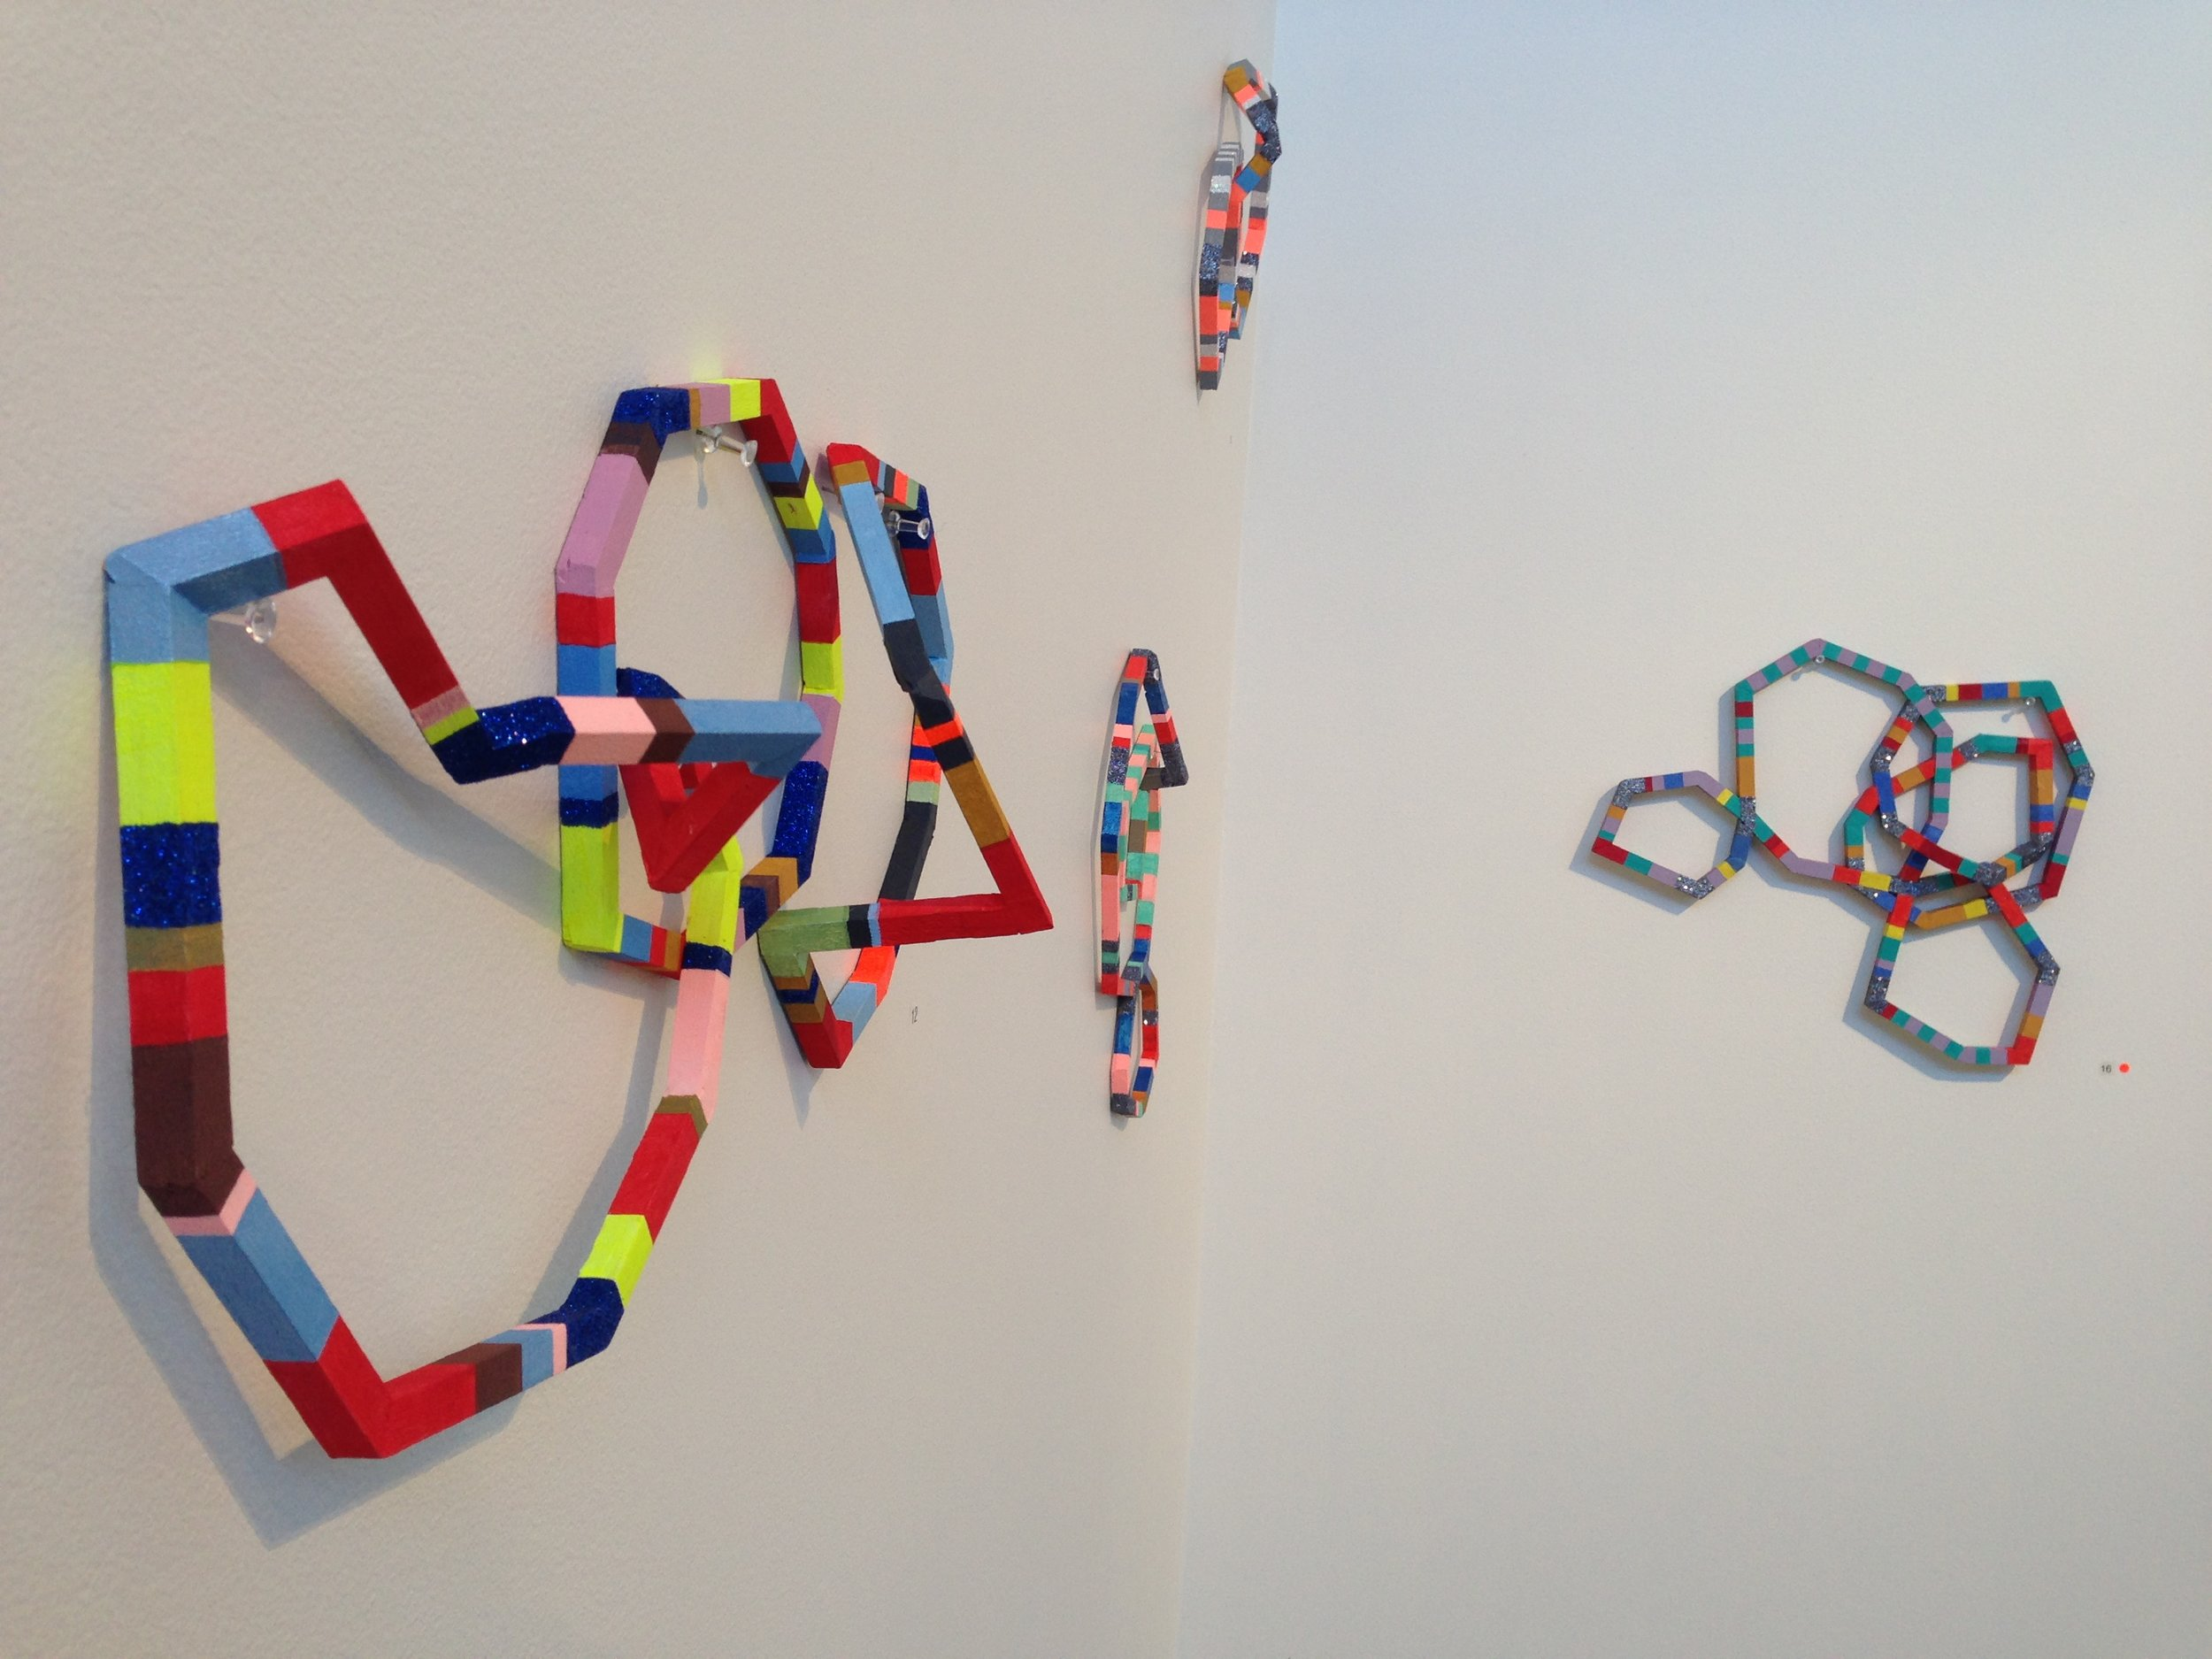 'In Tandem' 2014, installation view, Brenda May Gallery, Sydney. Image featuring works from Al Munro's 'Molecular Measure' series. Curated by Olivia Welch. Image courtesy of the Artists and MAY SPACE, Sydney.